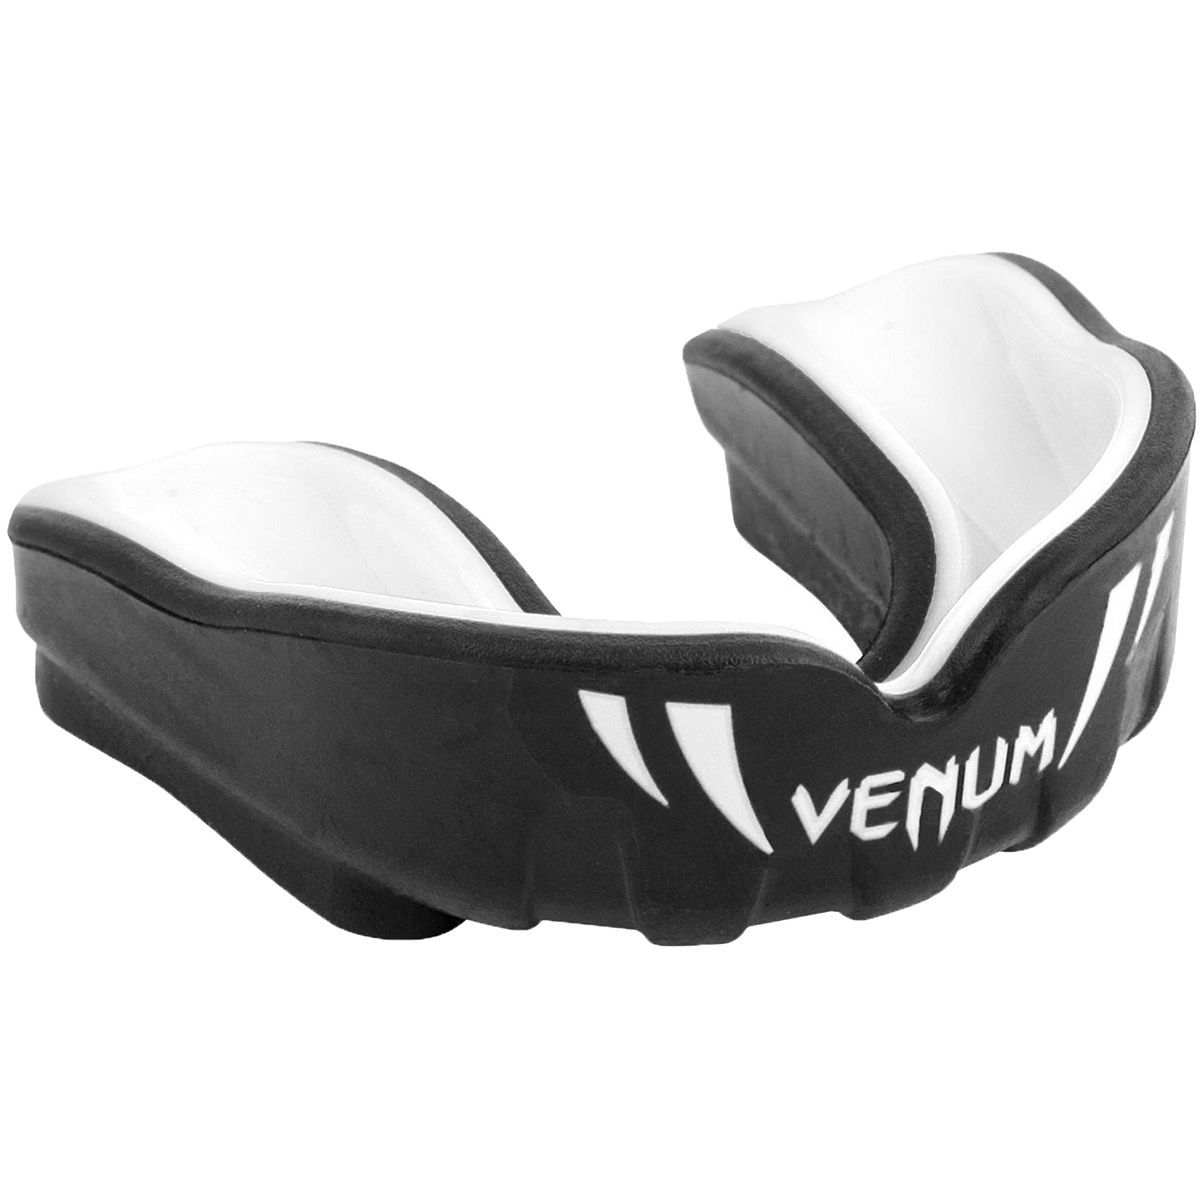 Venum Challenger Kid/'s Gel and Rubber Protective Mouthguard with Case